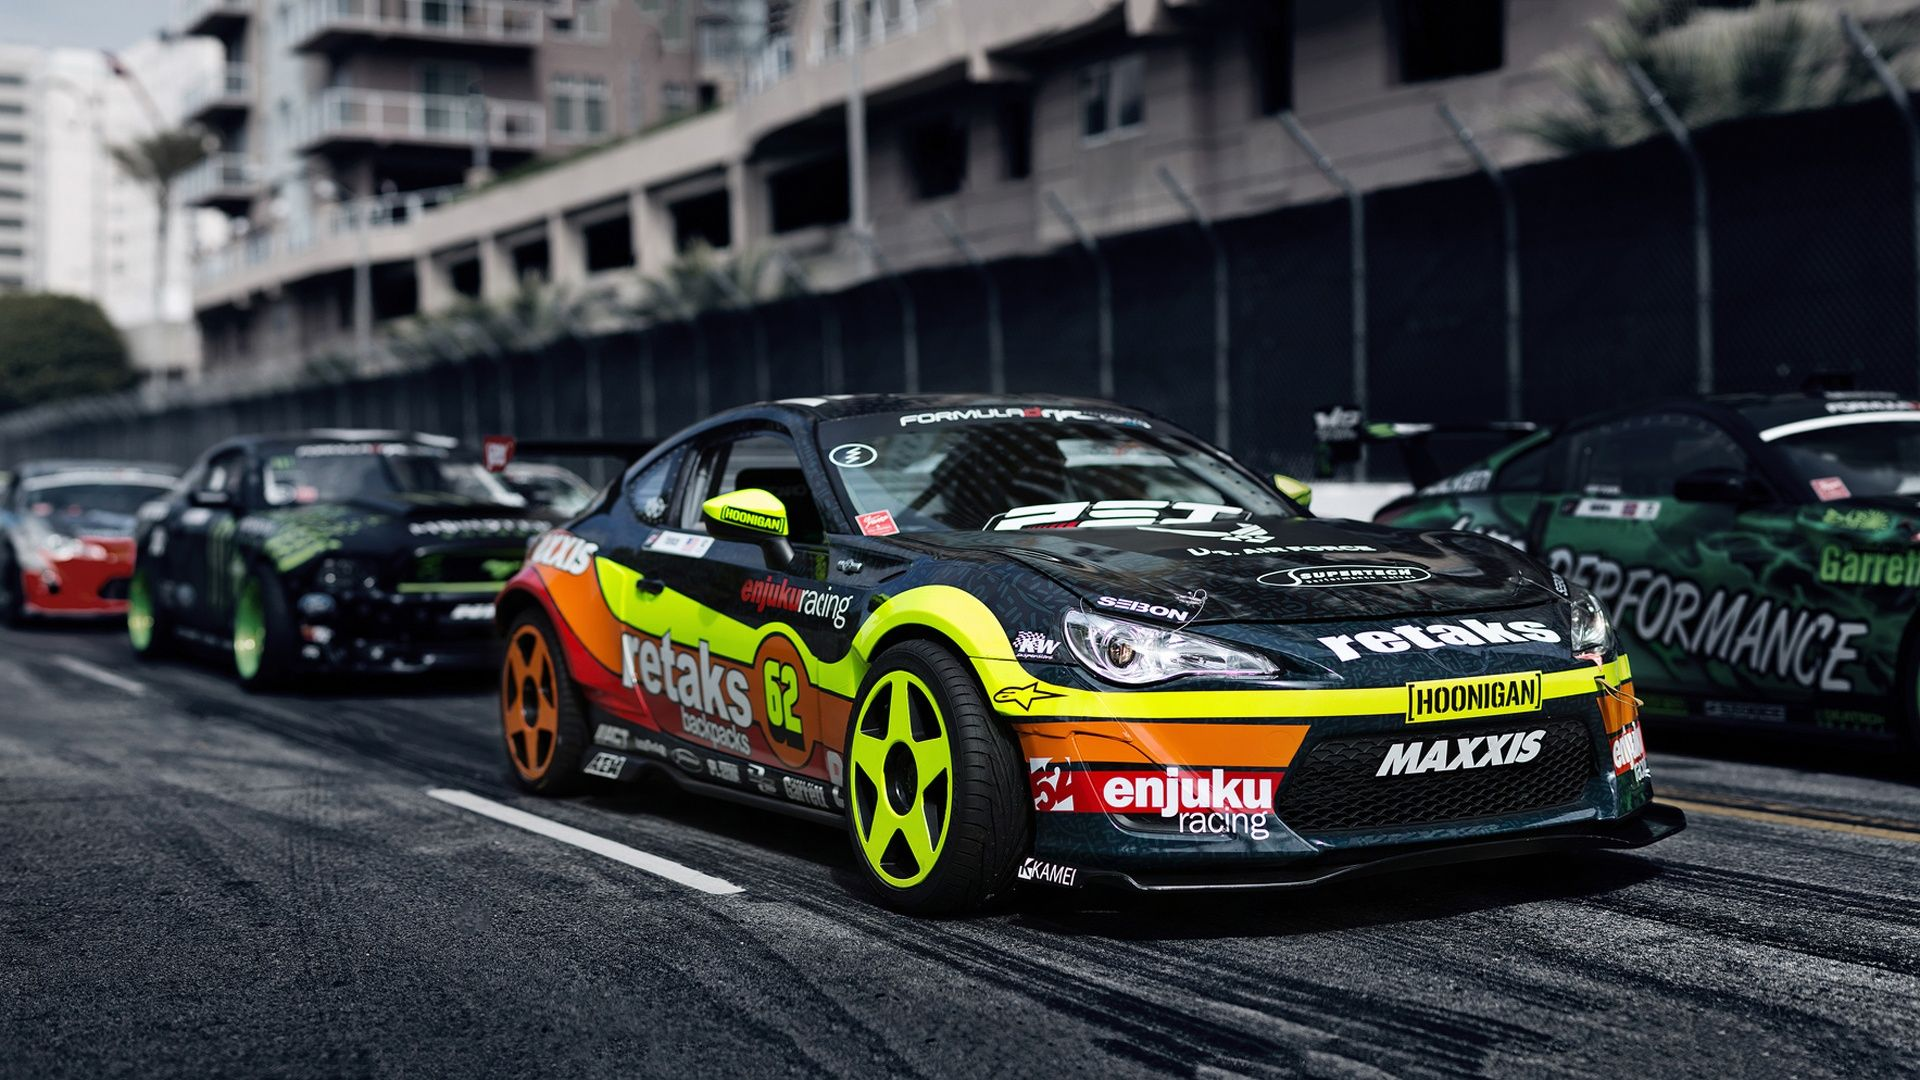 Collection Of Formula Drift Wallpaper On Hdwallpapers